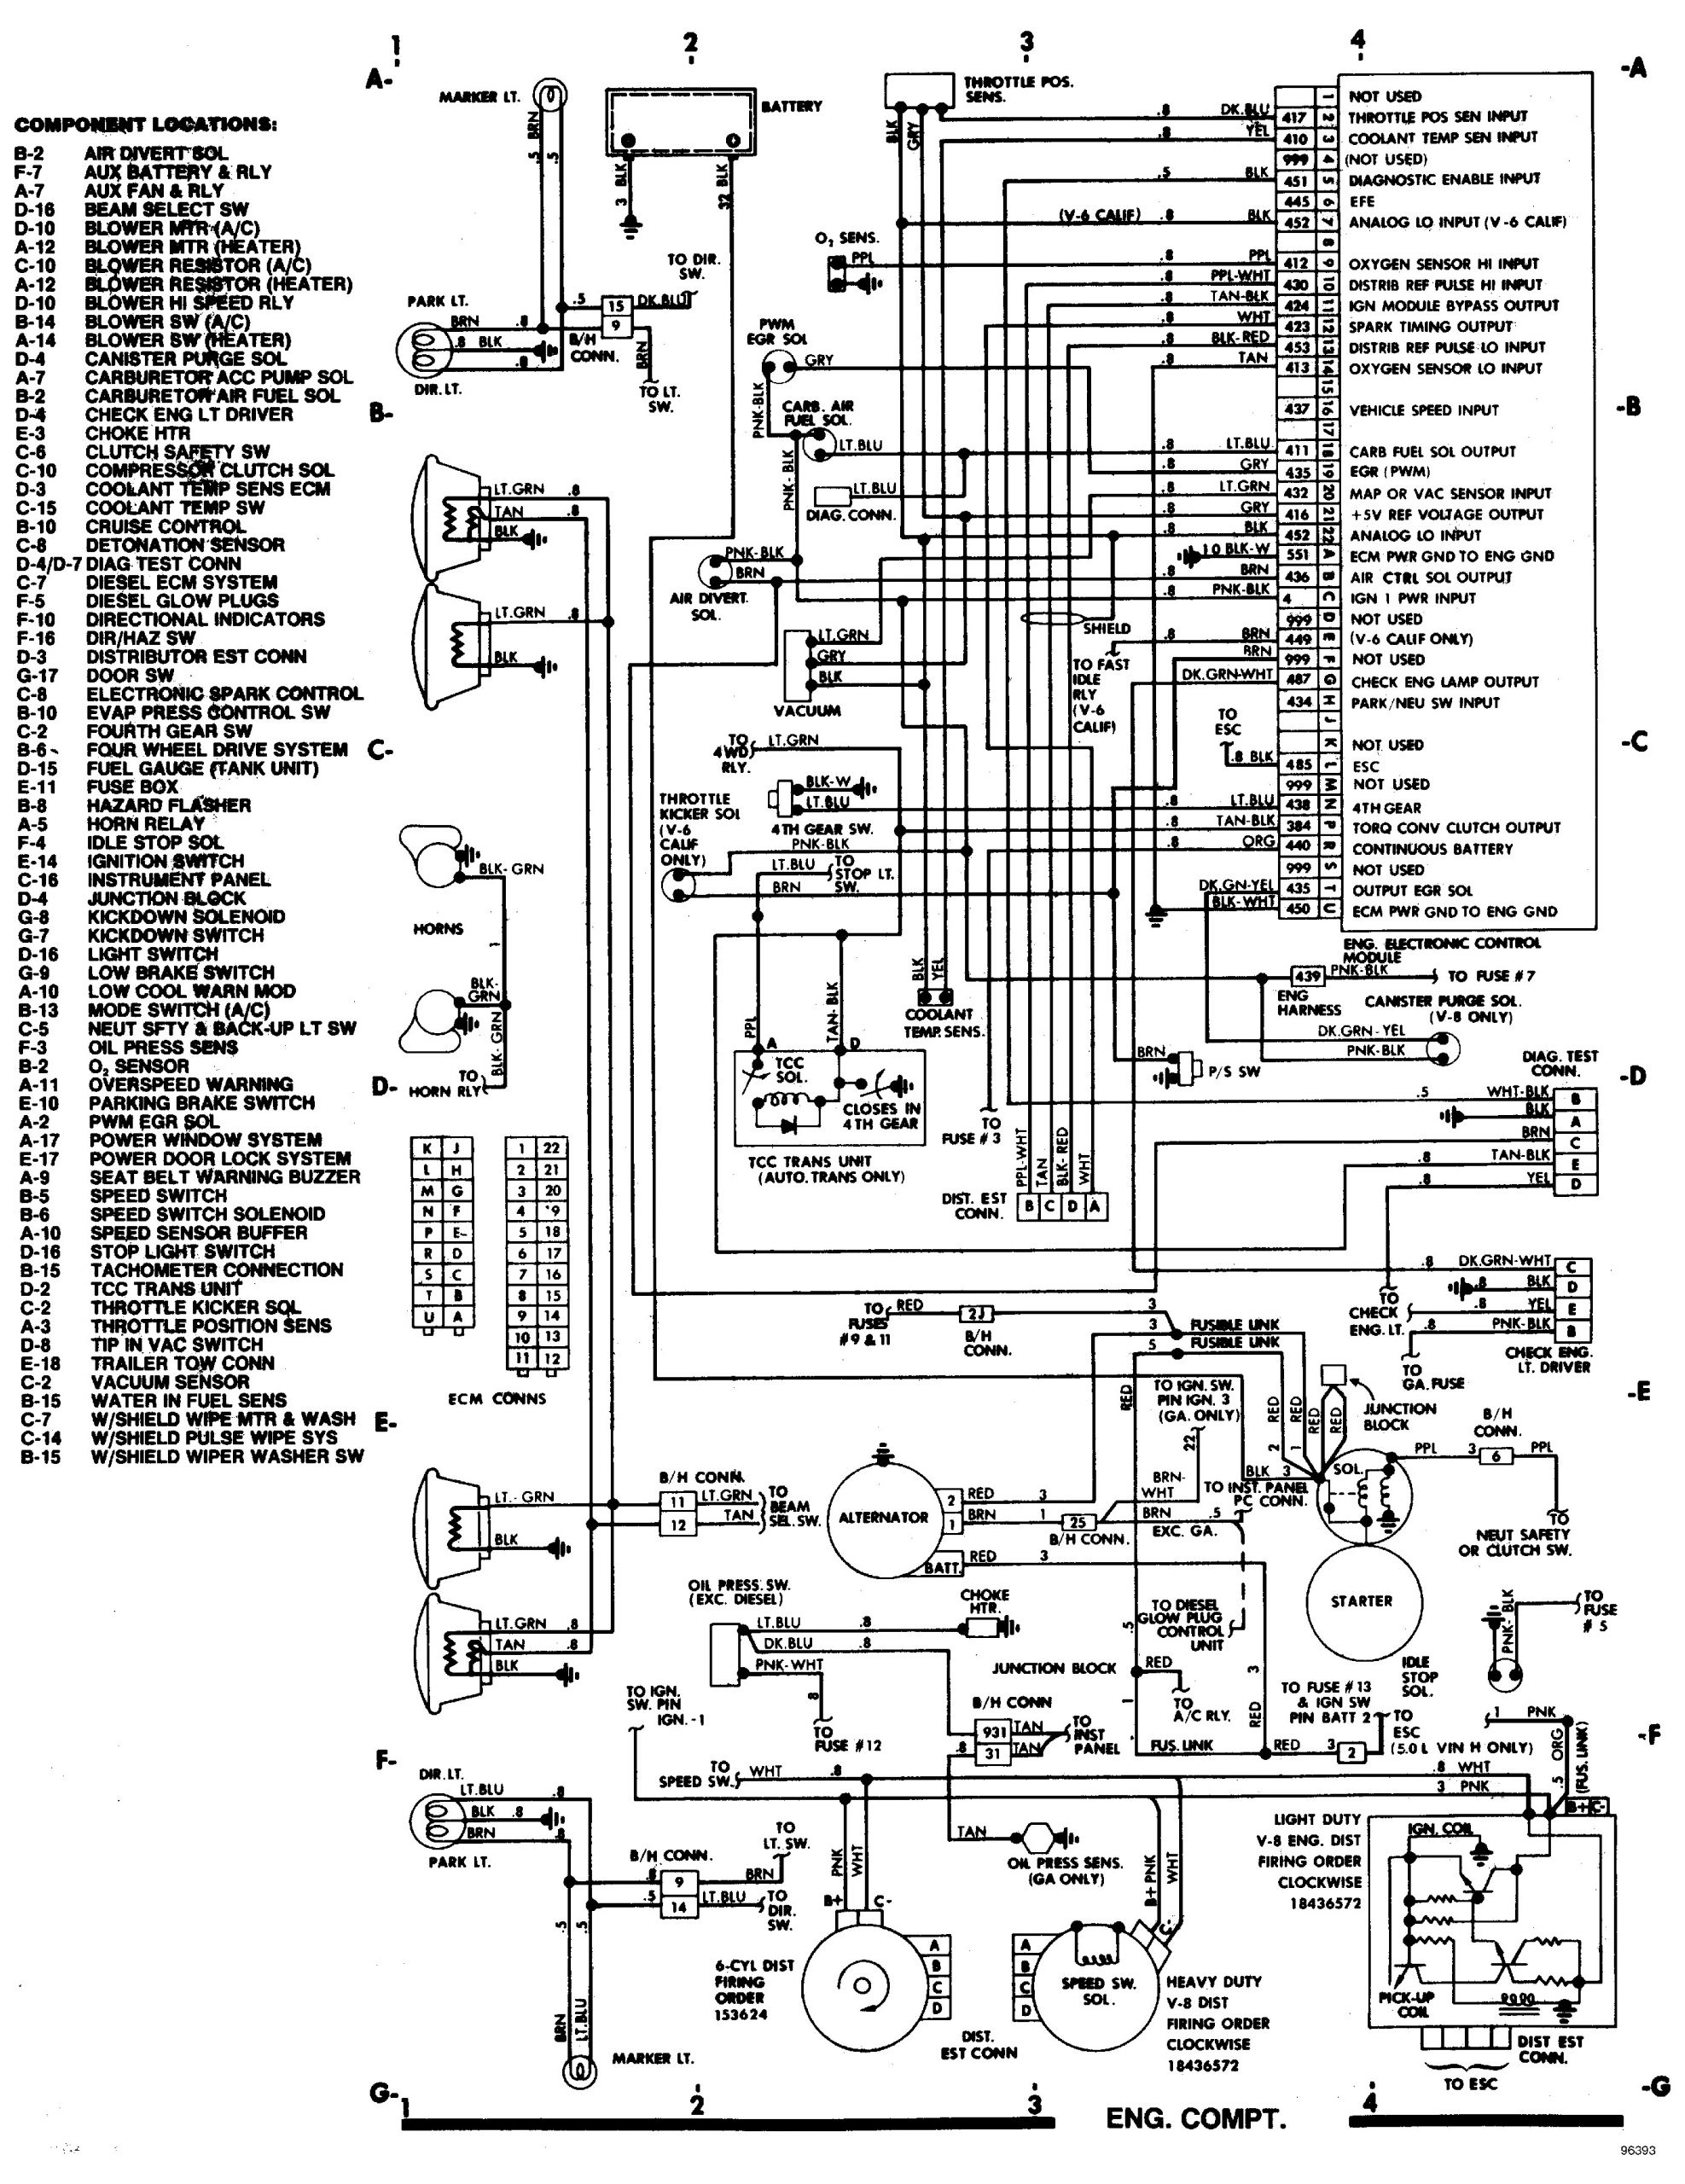 Wiring Diagram On A 1982 Shevy Truck Radeo 1982 Chevy Truck Wiring Diagram